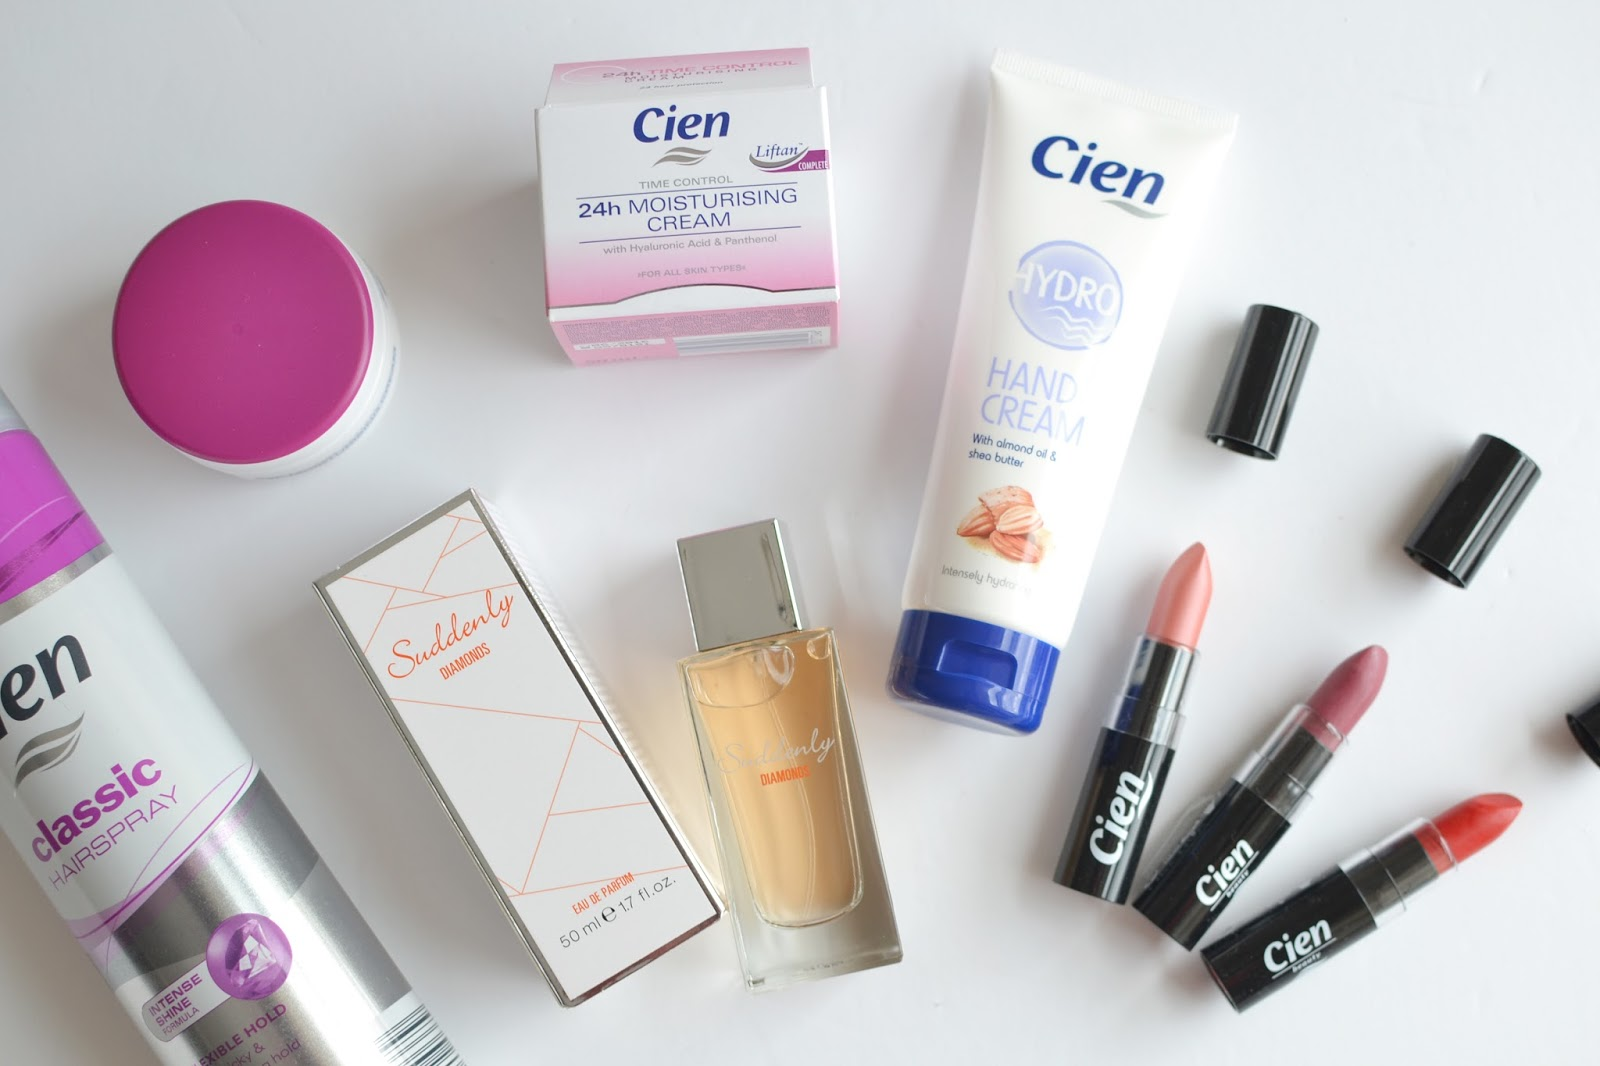 lidl beauty products, cheap beauty products